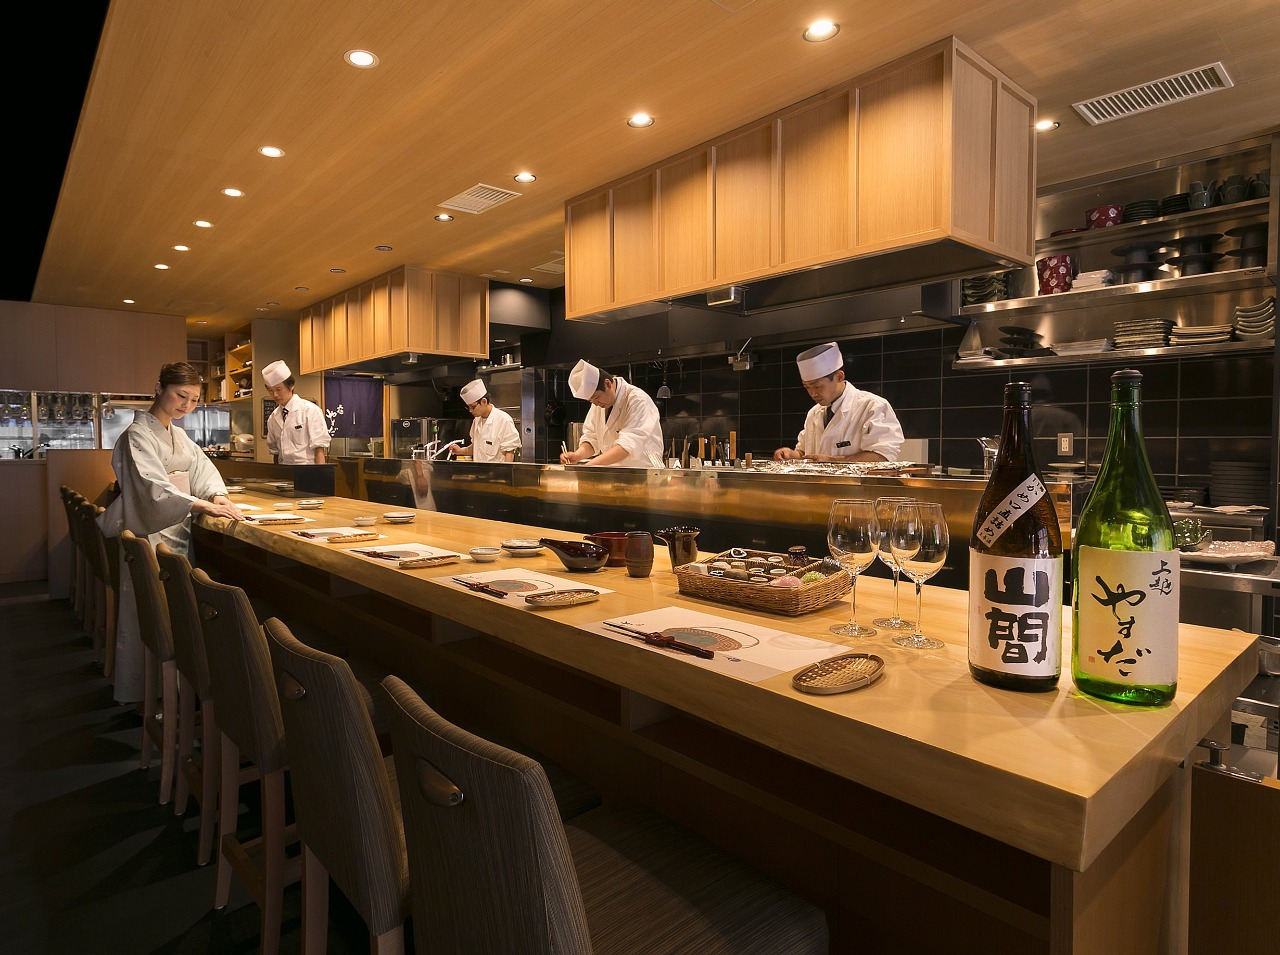 Popular counter seats from where you can enjoy viewing the chefs' professional skills